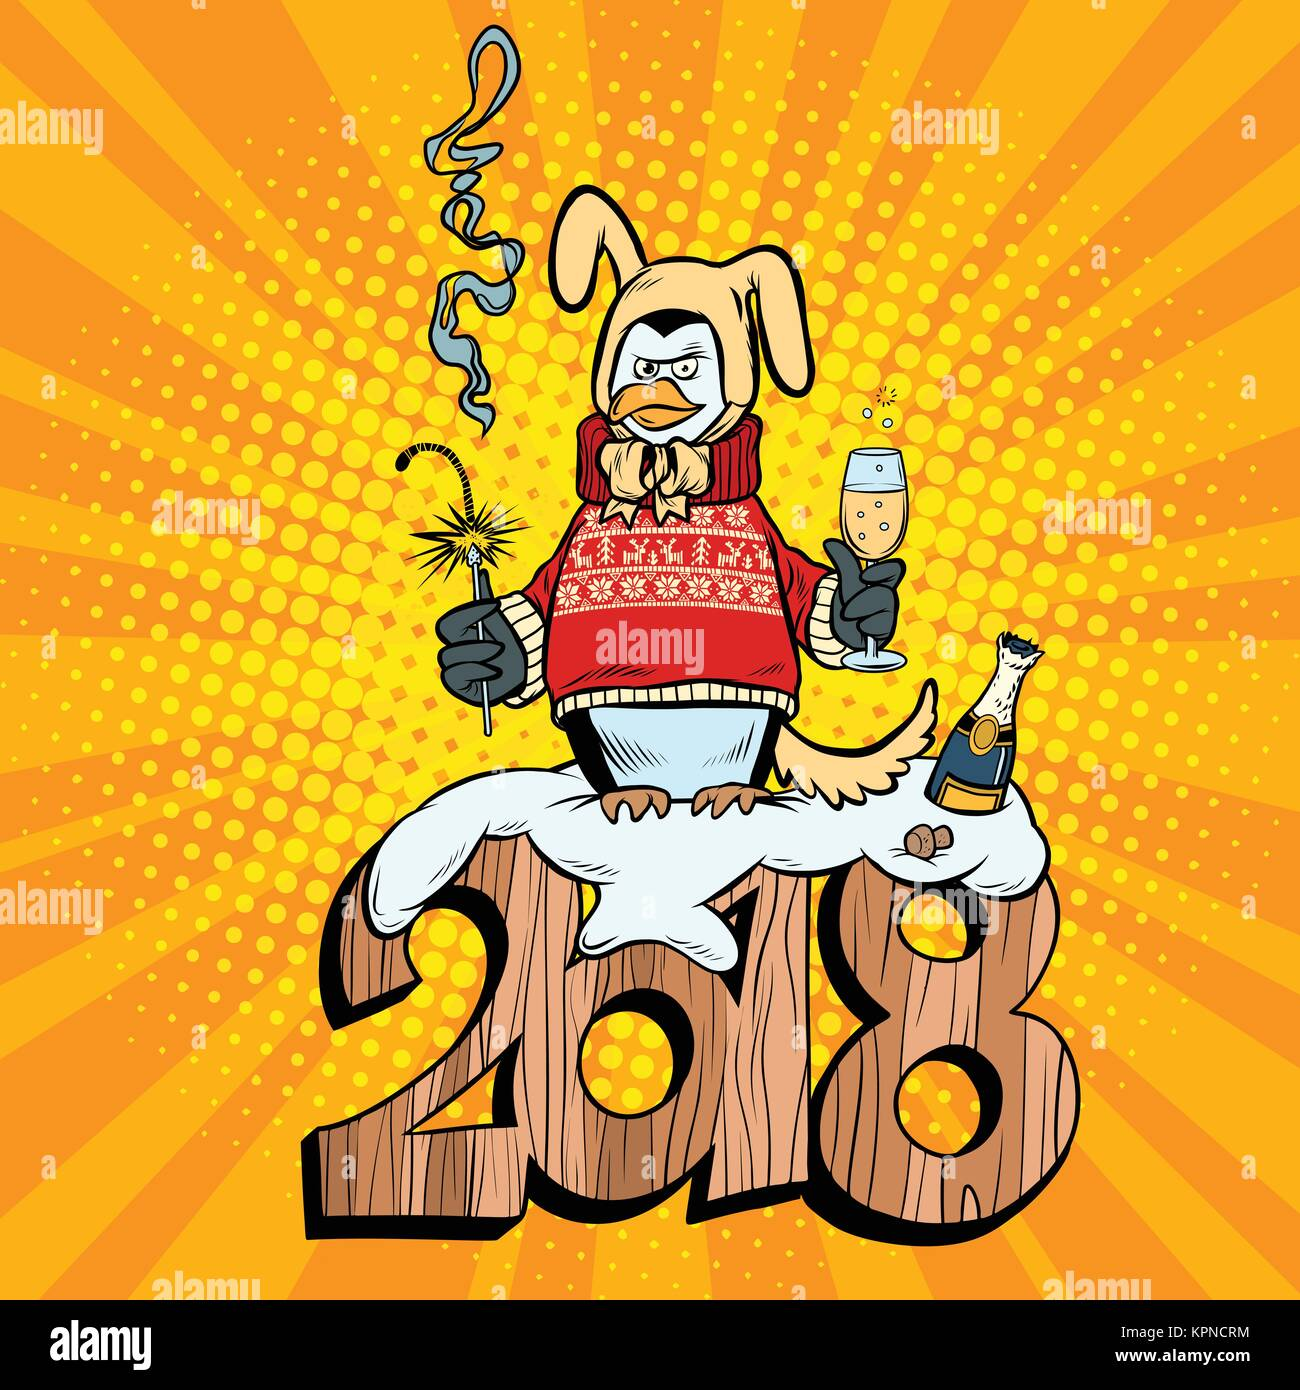 2018 new year, penguin suit yellow earth dog. Champagne and sparklers. Comic book cartoon pop art retro vector illustration - Stock Vector